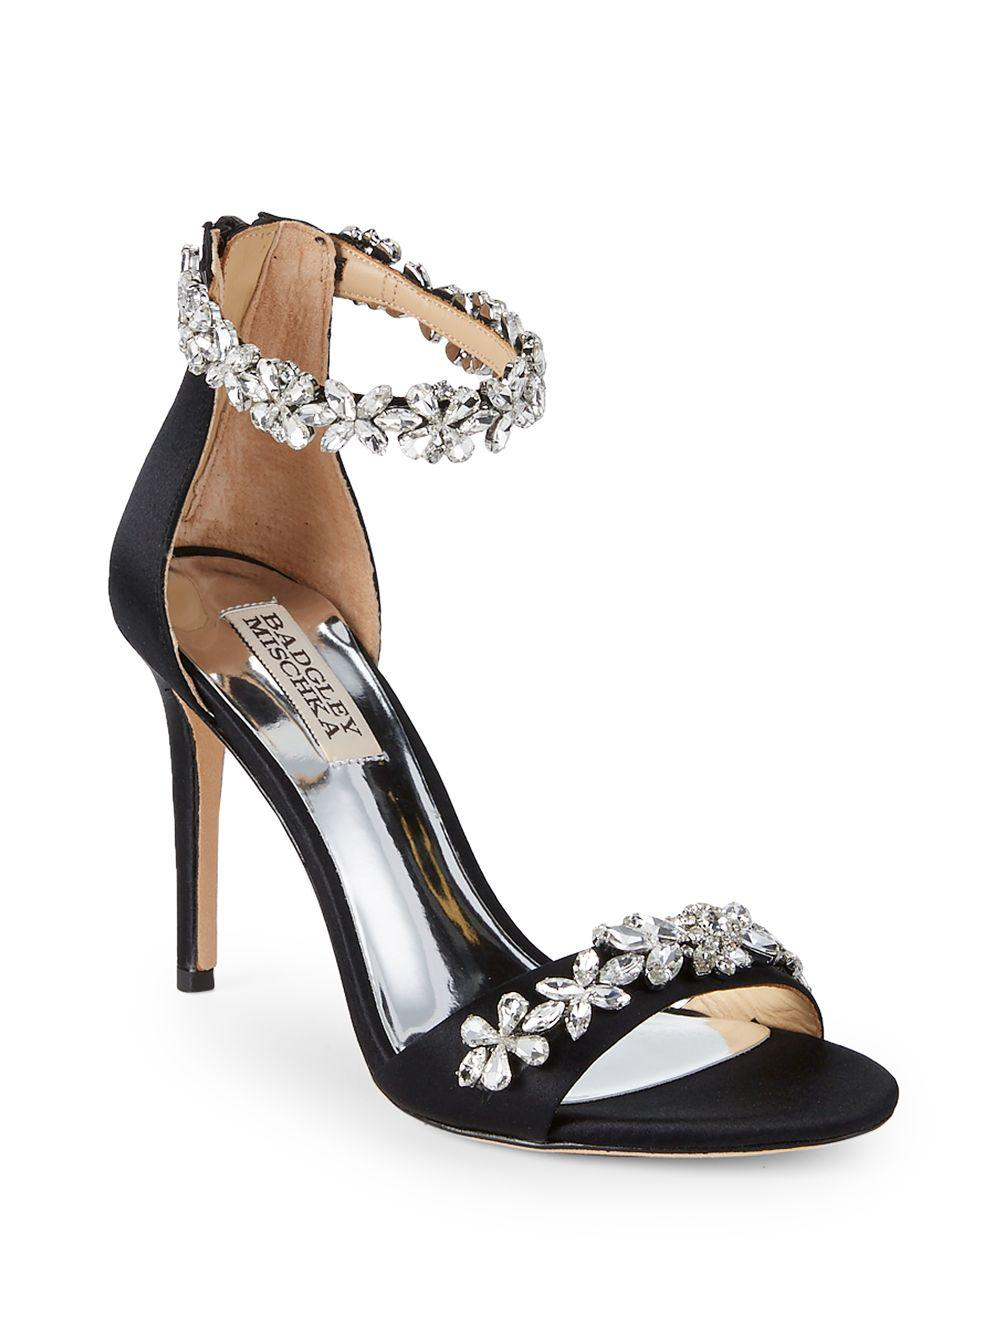 36c932eeffe Badgley Mischka - Black Valentine Embellished Sandals - Lyst. View  fullscreen